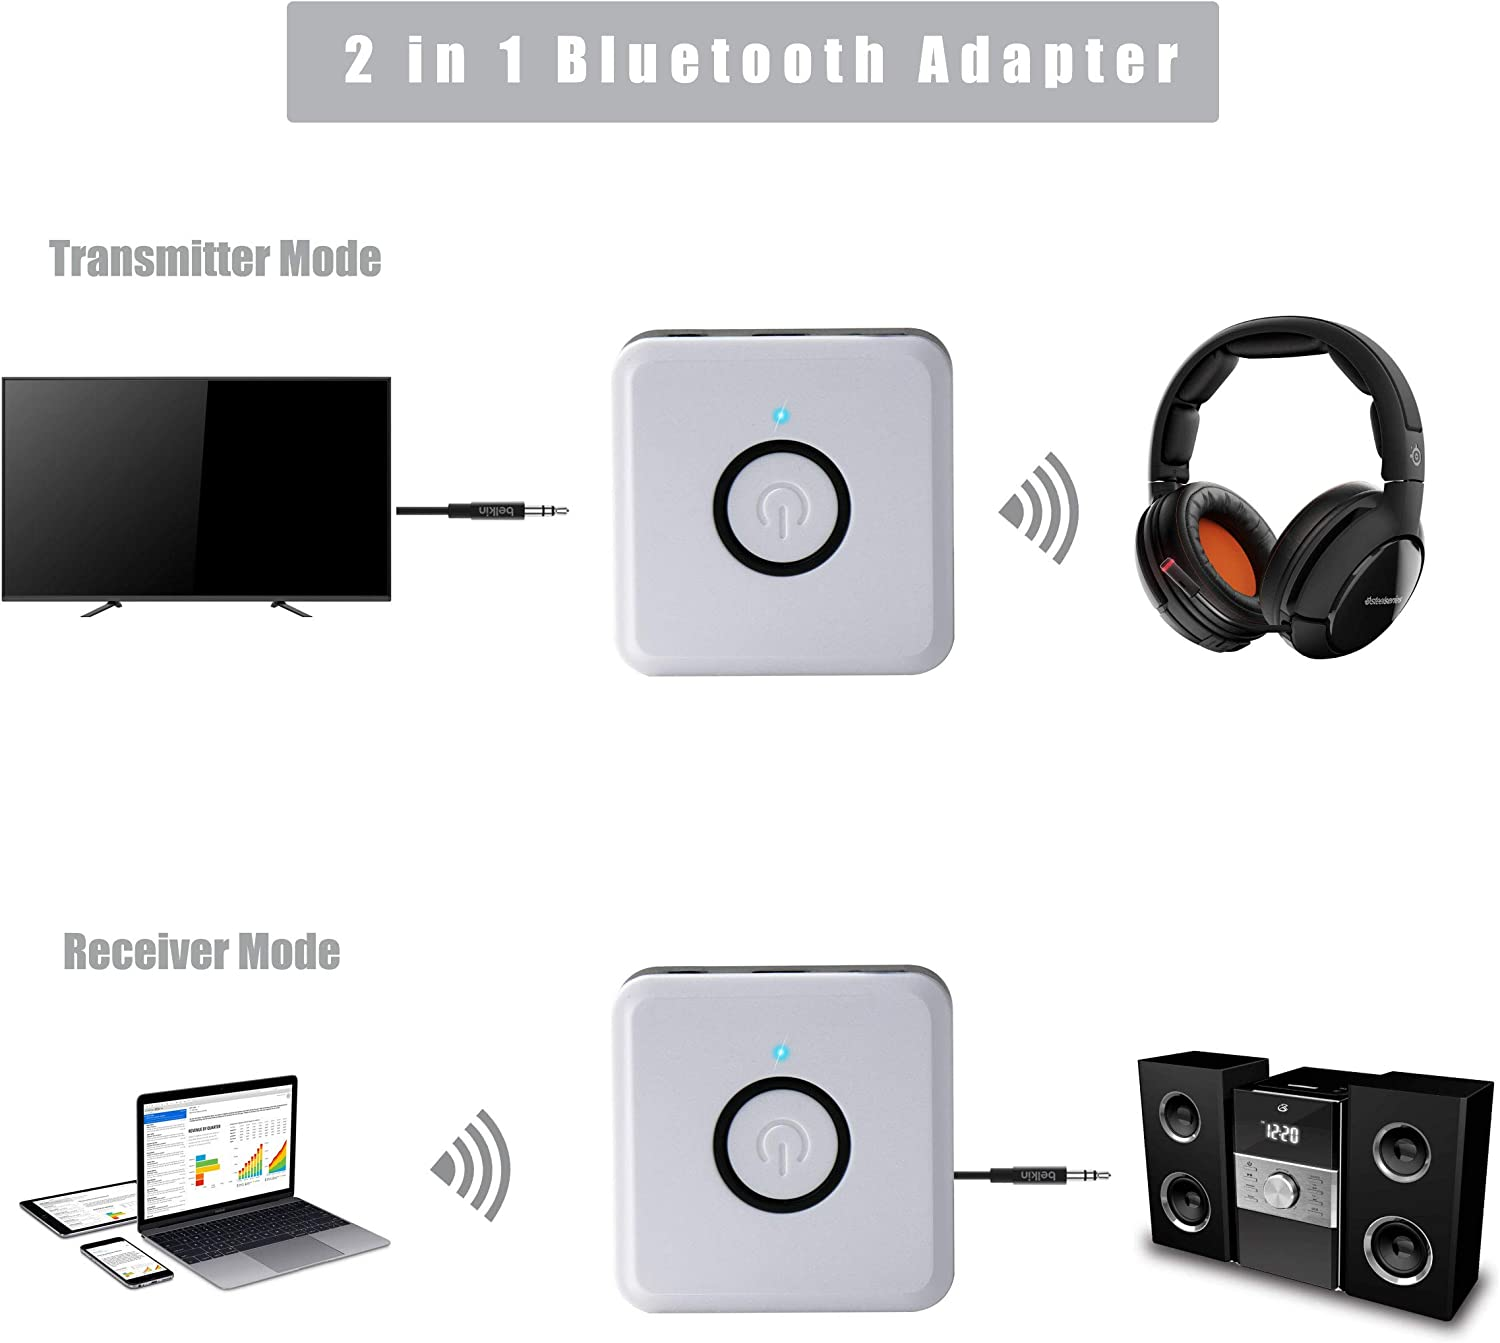 Bluetooth 4.2 Adapter with aptX Low Latency Wireless Audio Music Adapter for TV PC iPod Home Speaker System via 3.5 mm //RCA Aux Jack White Bluetooth Transmitter//Receiver 2 in 1